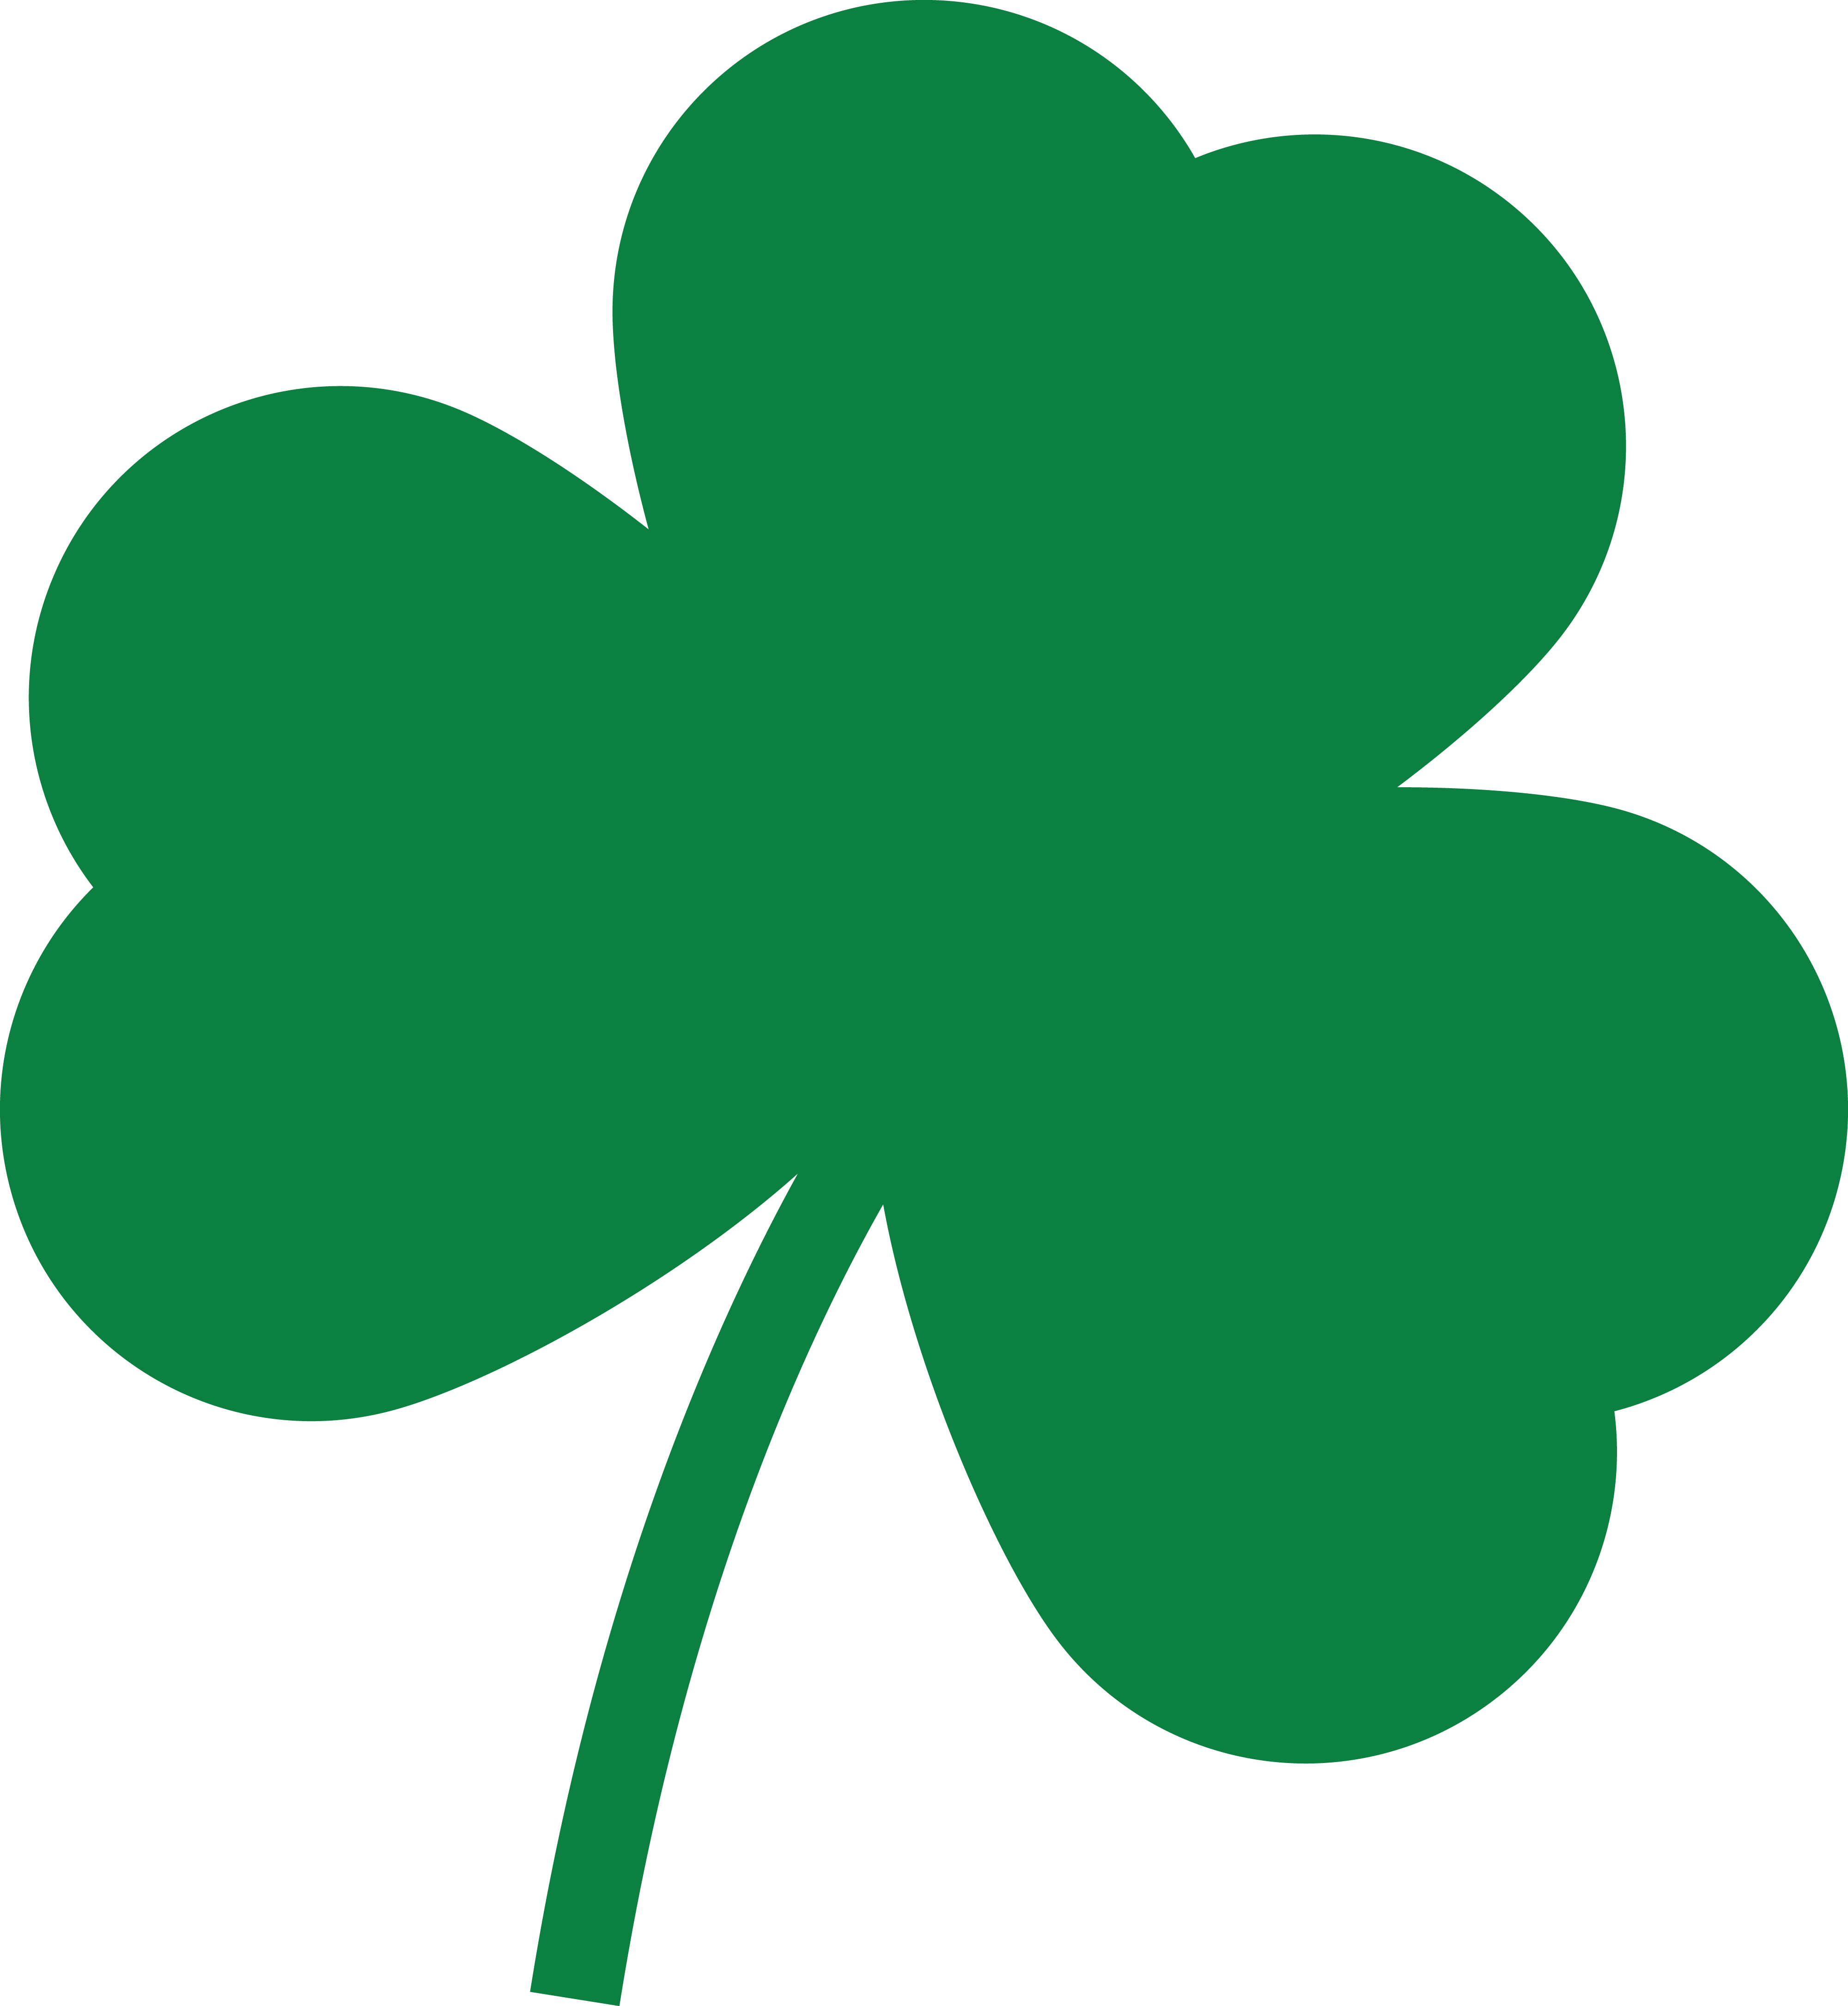 Three Leaf Clover Clipart 50 Stunning Cliparts Tlcc 4570book